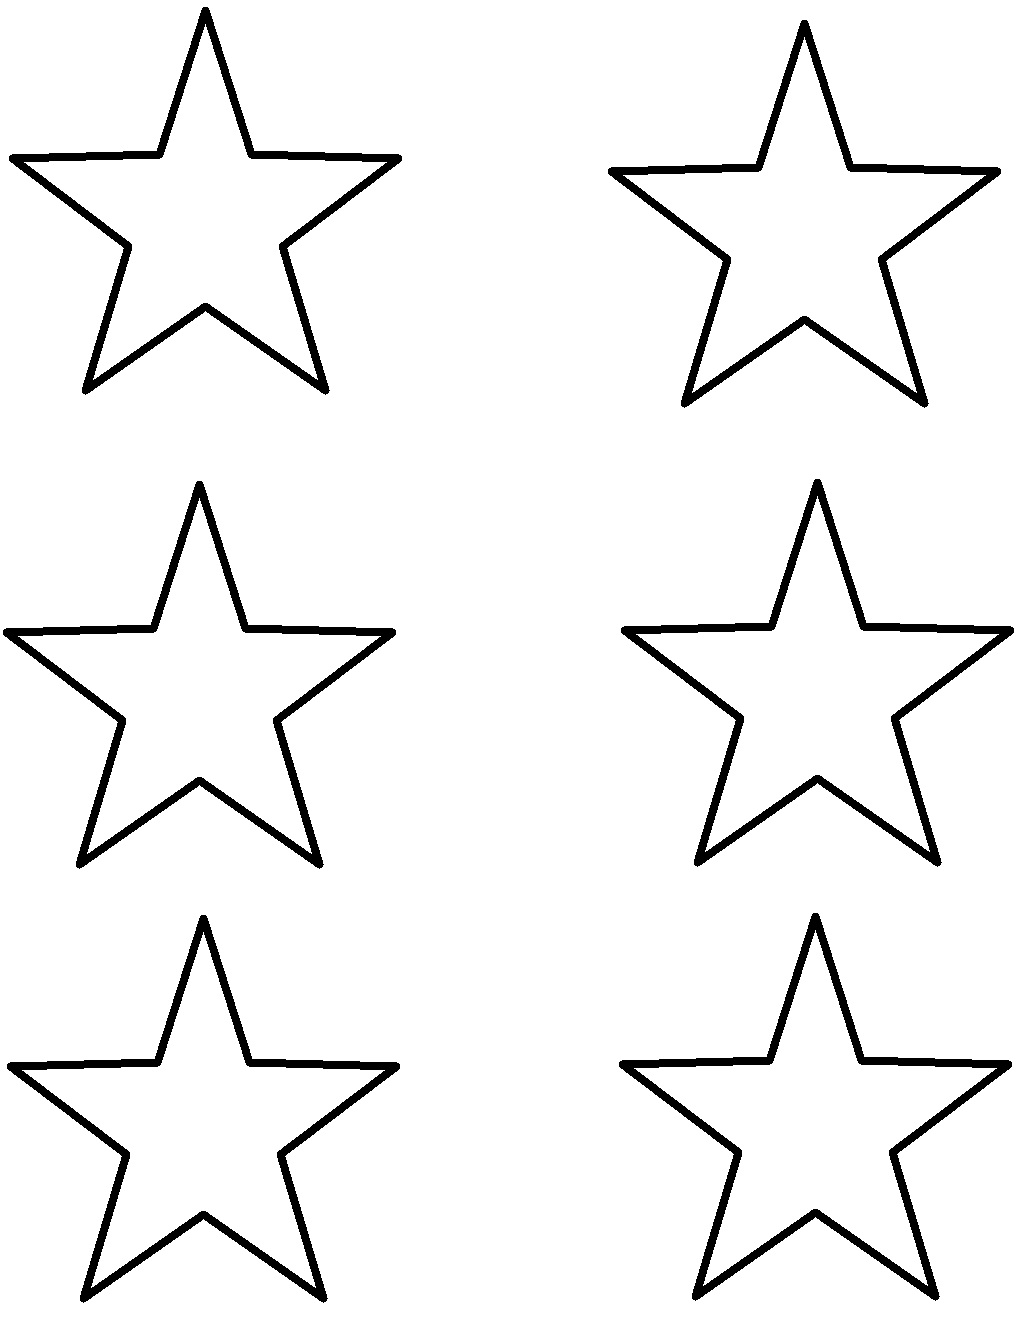 Small Star Template Free Print - ClipArt Best